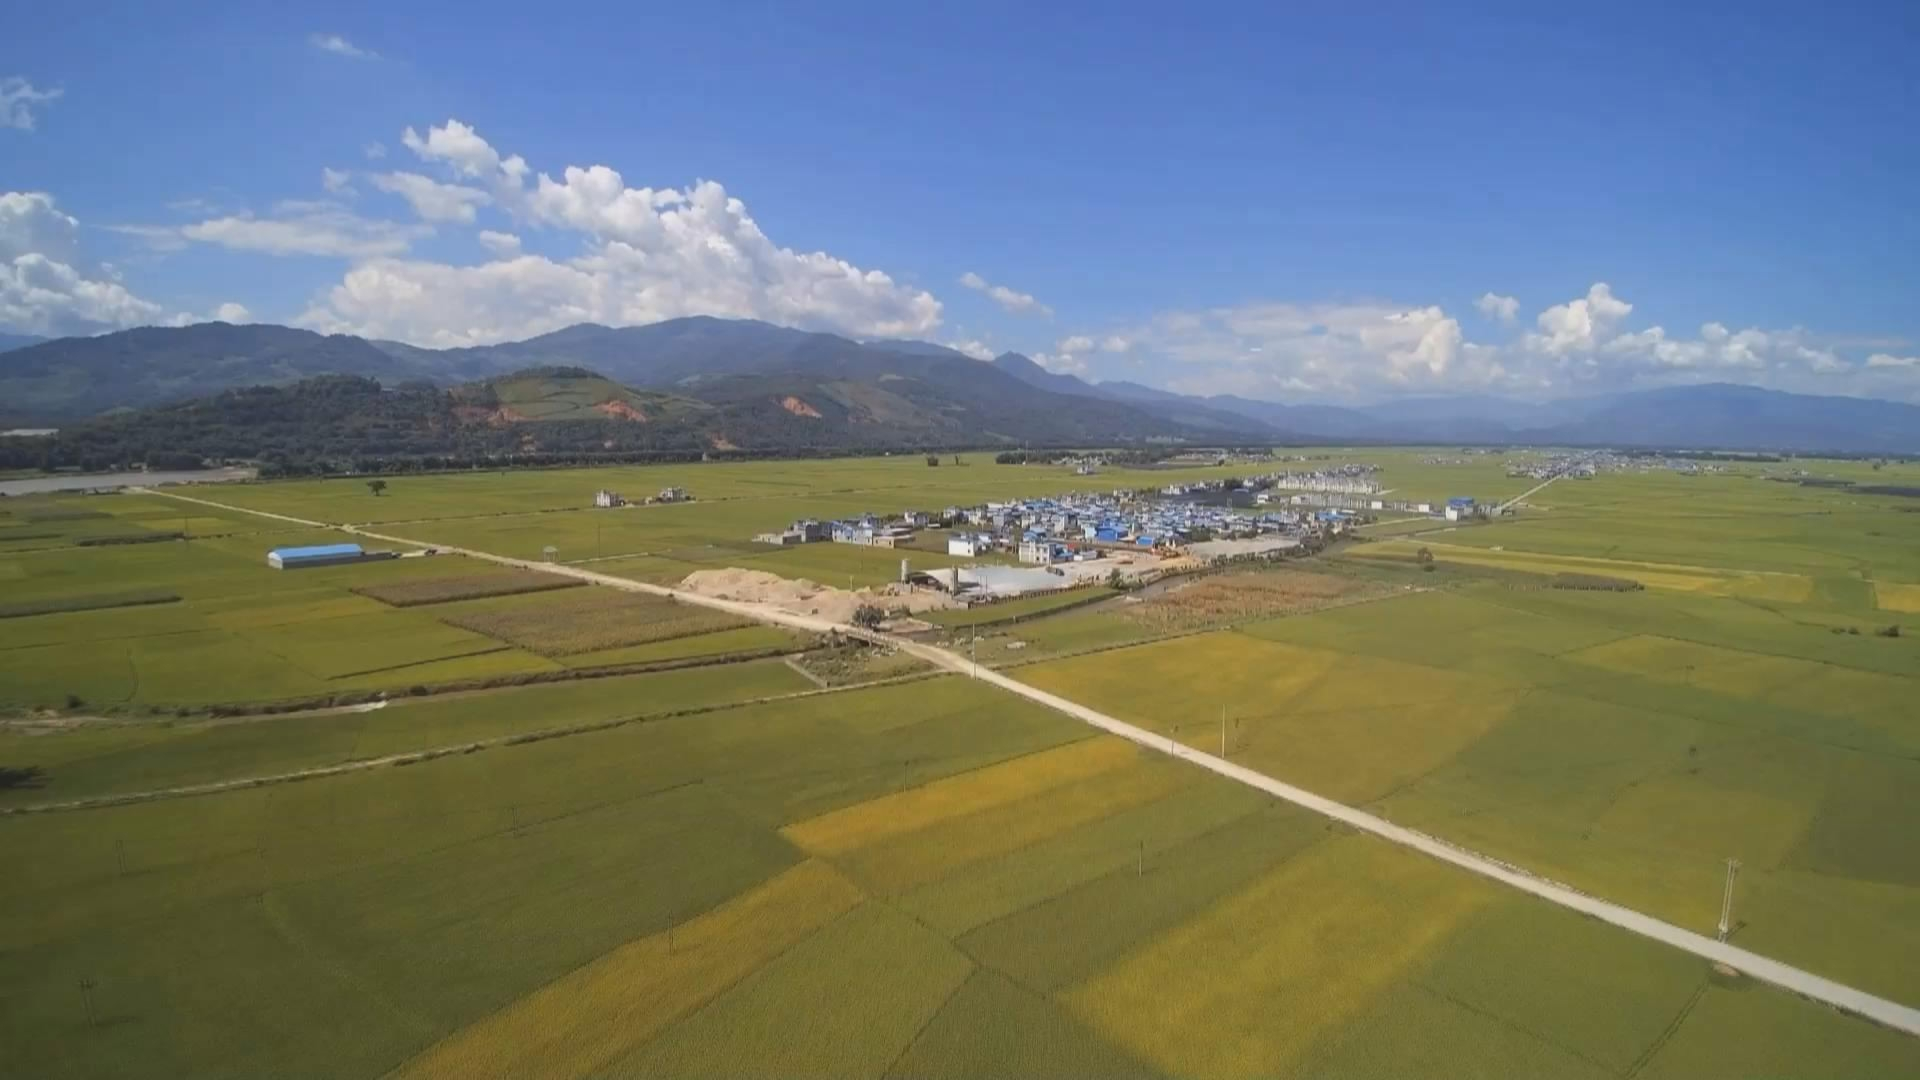 China to raise land use efficiency in rural areas